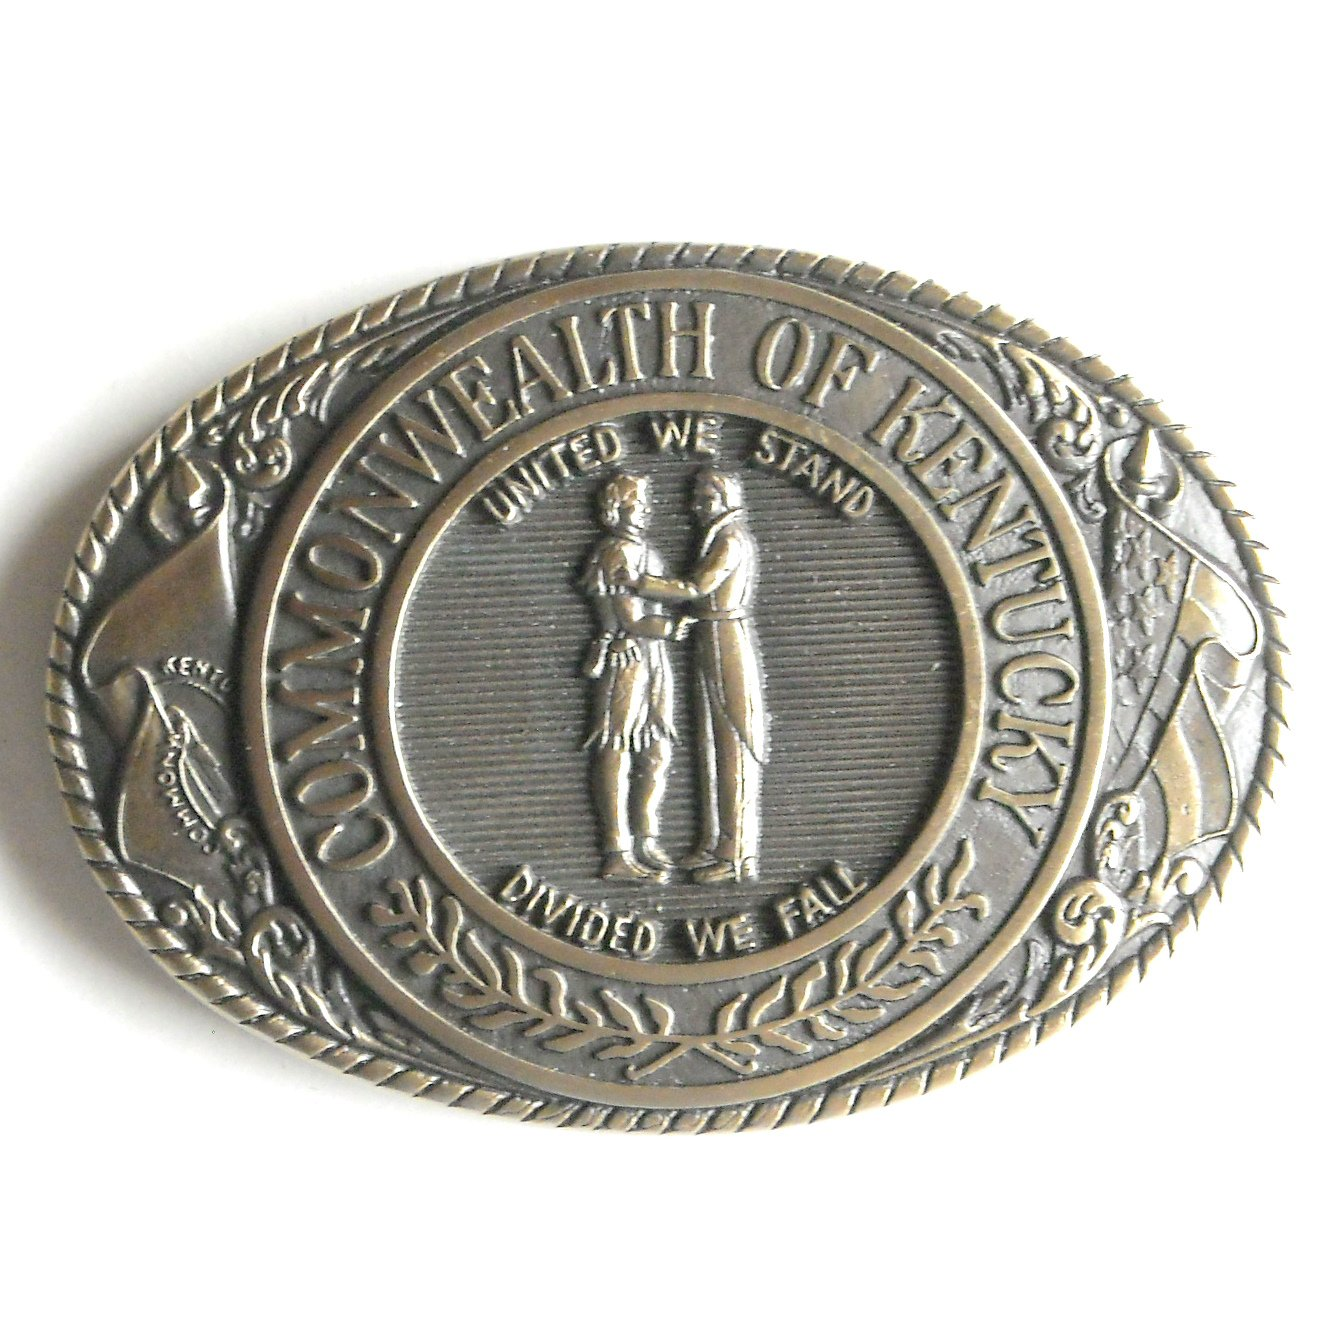 Vintage Tony Lama First Edition Great Seal Of The State Commonwealth of Kentucky brass belt buckle